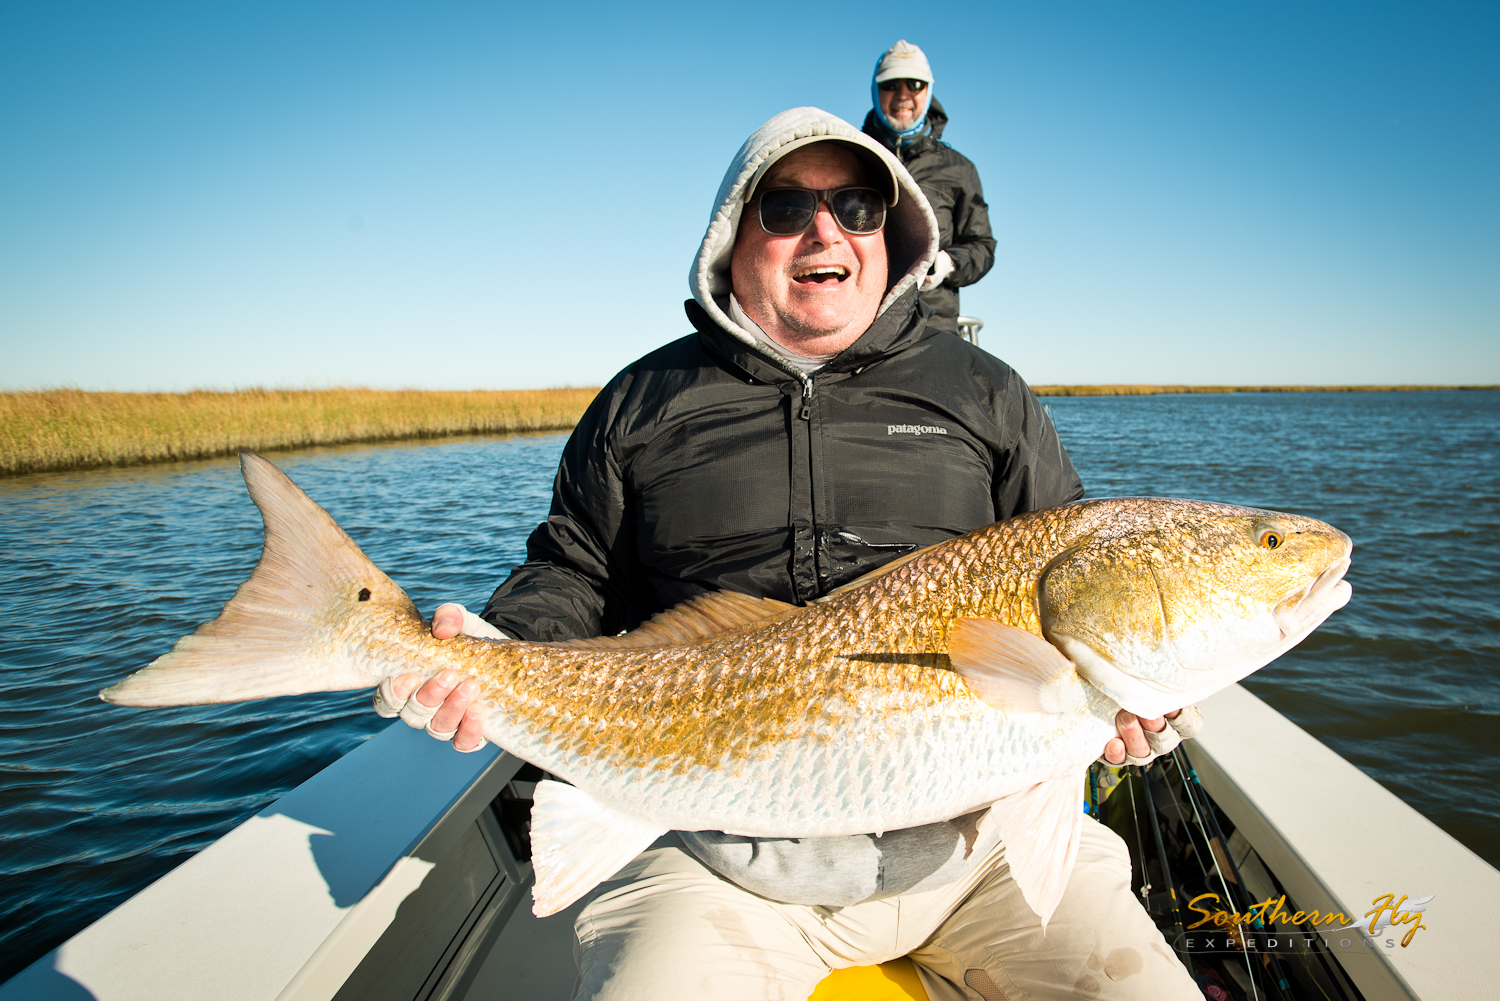 Fishing Charter October in Louisiana with Southern Fly Expeditions